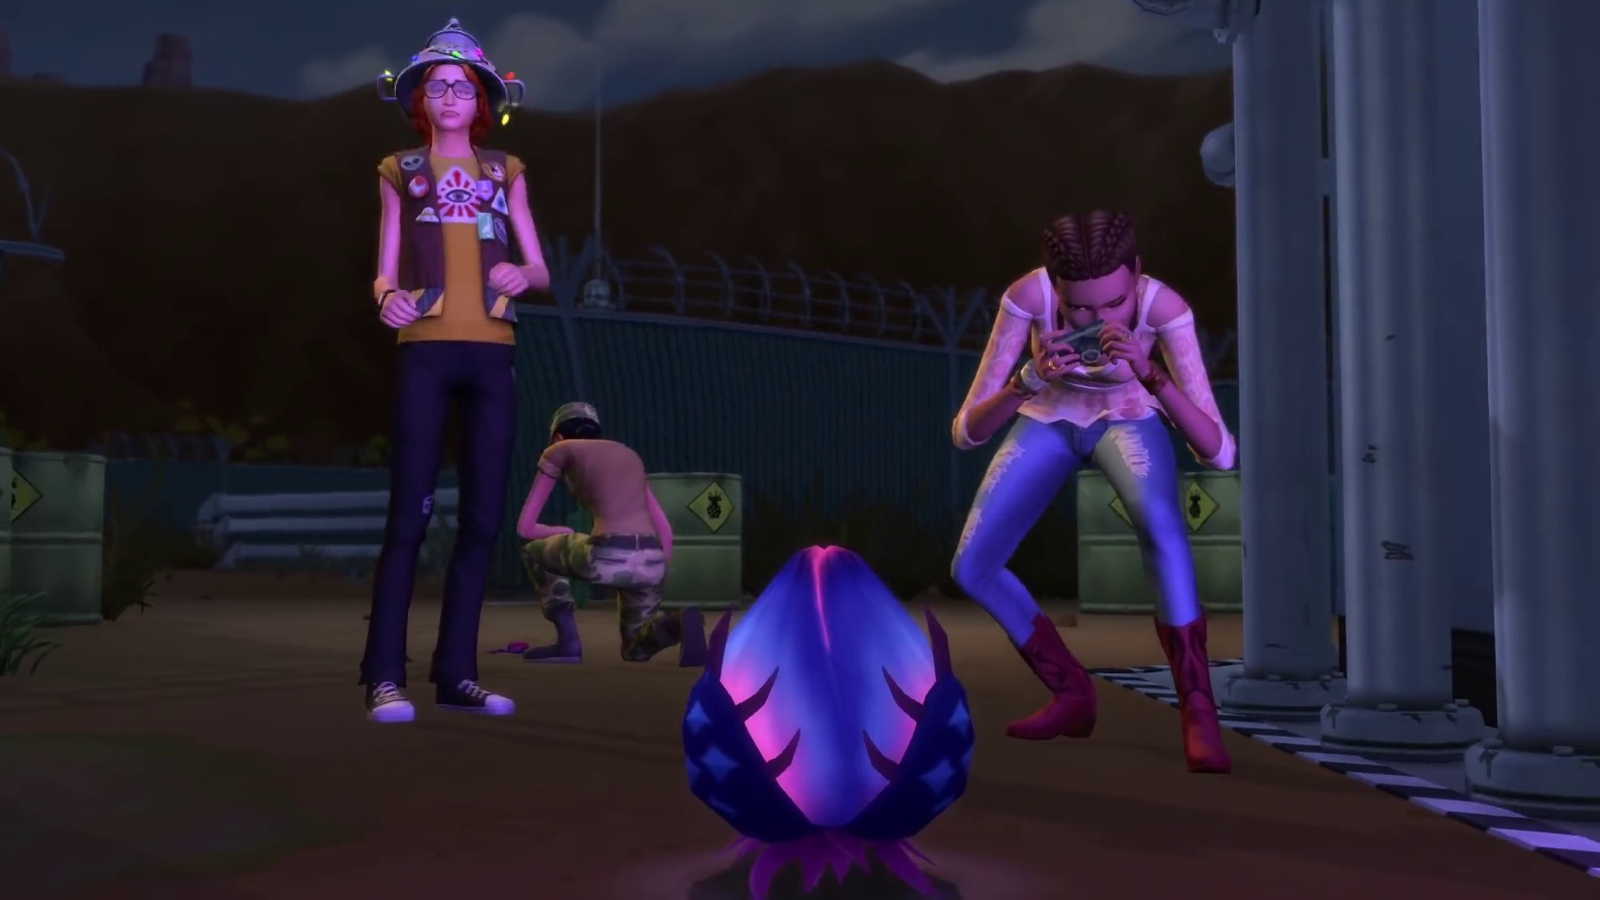 The Sims 4 investigates the paranormal in StrangerVille   Rock Paper